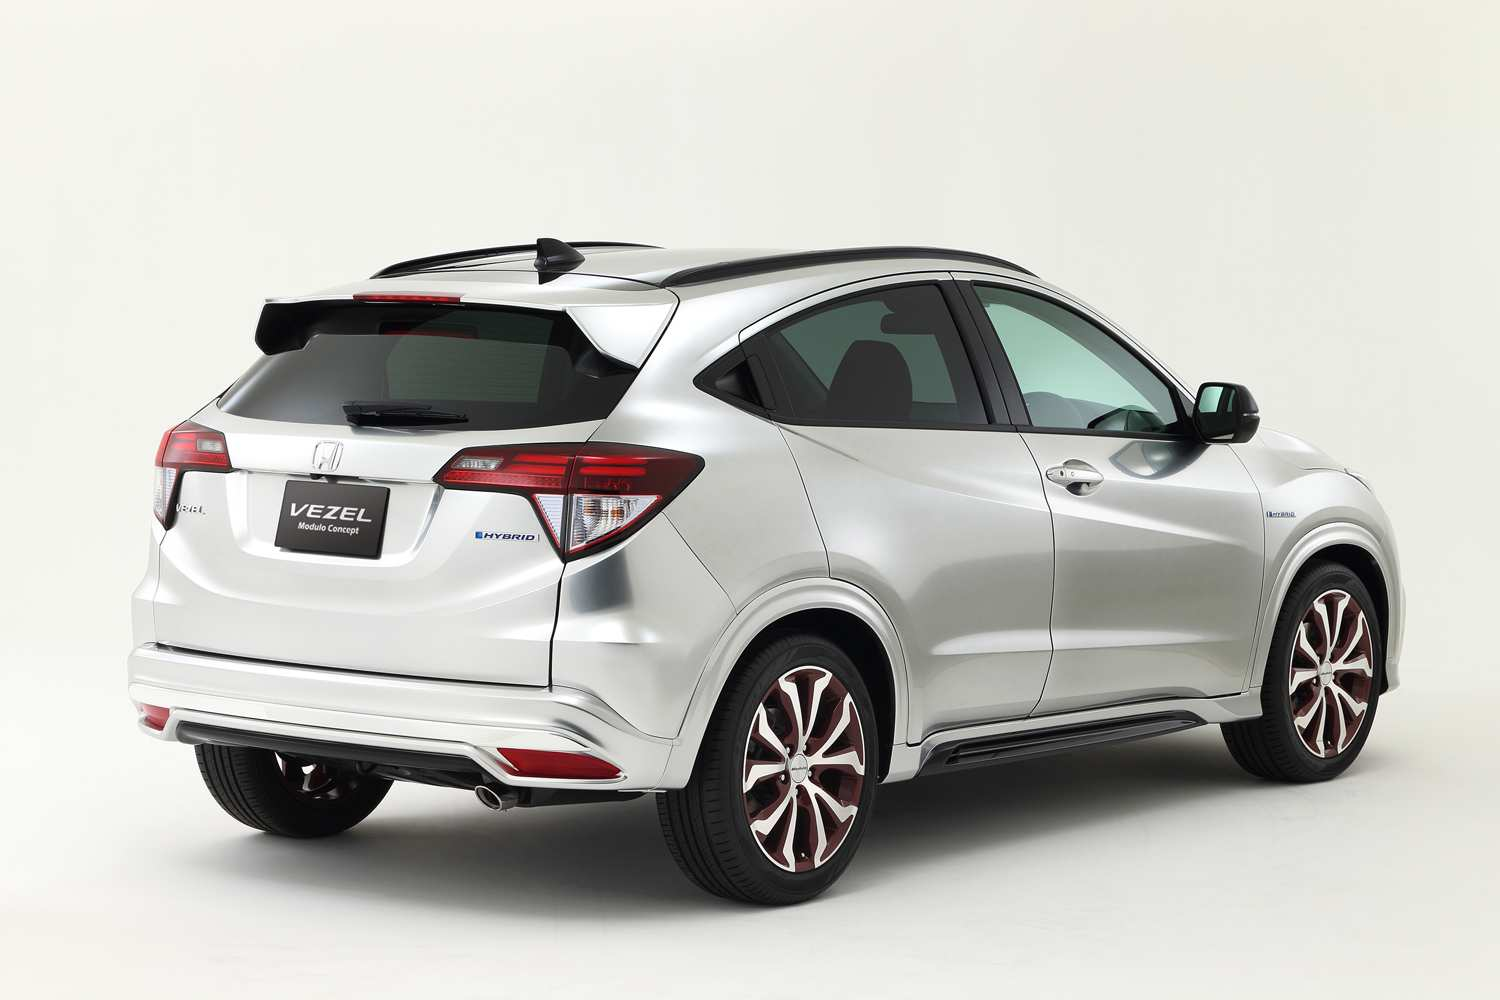 86 A 2020 Honda Vezel Prices